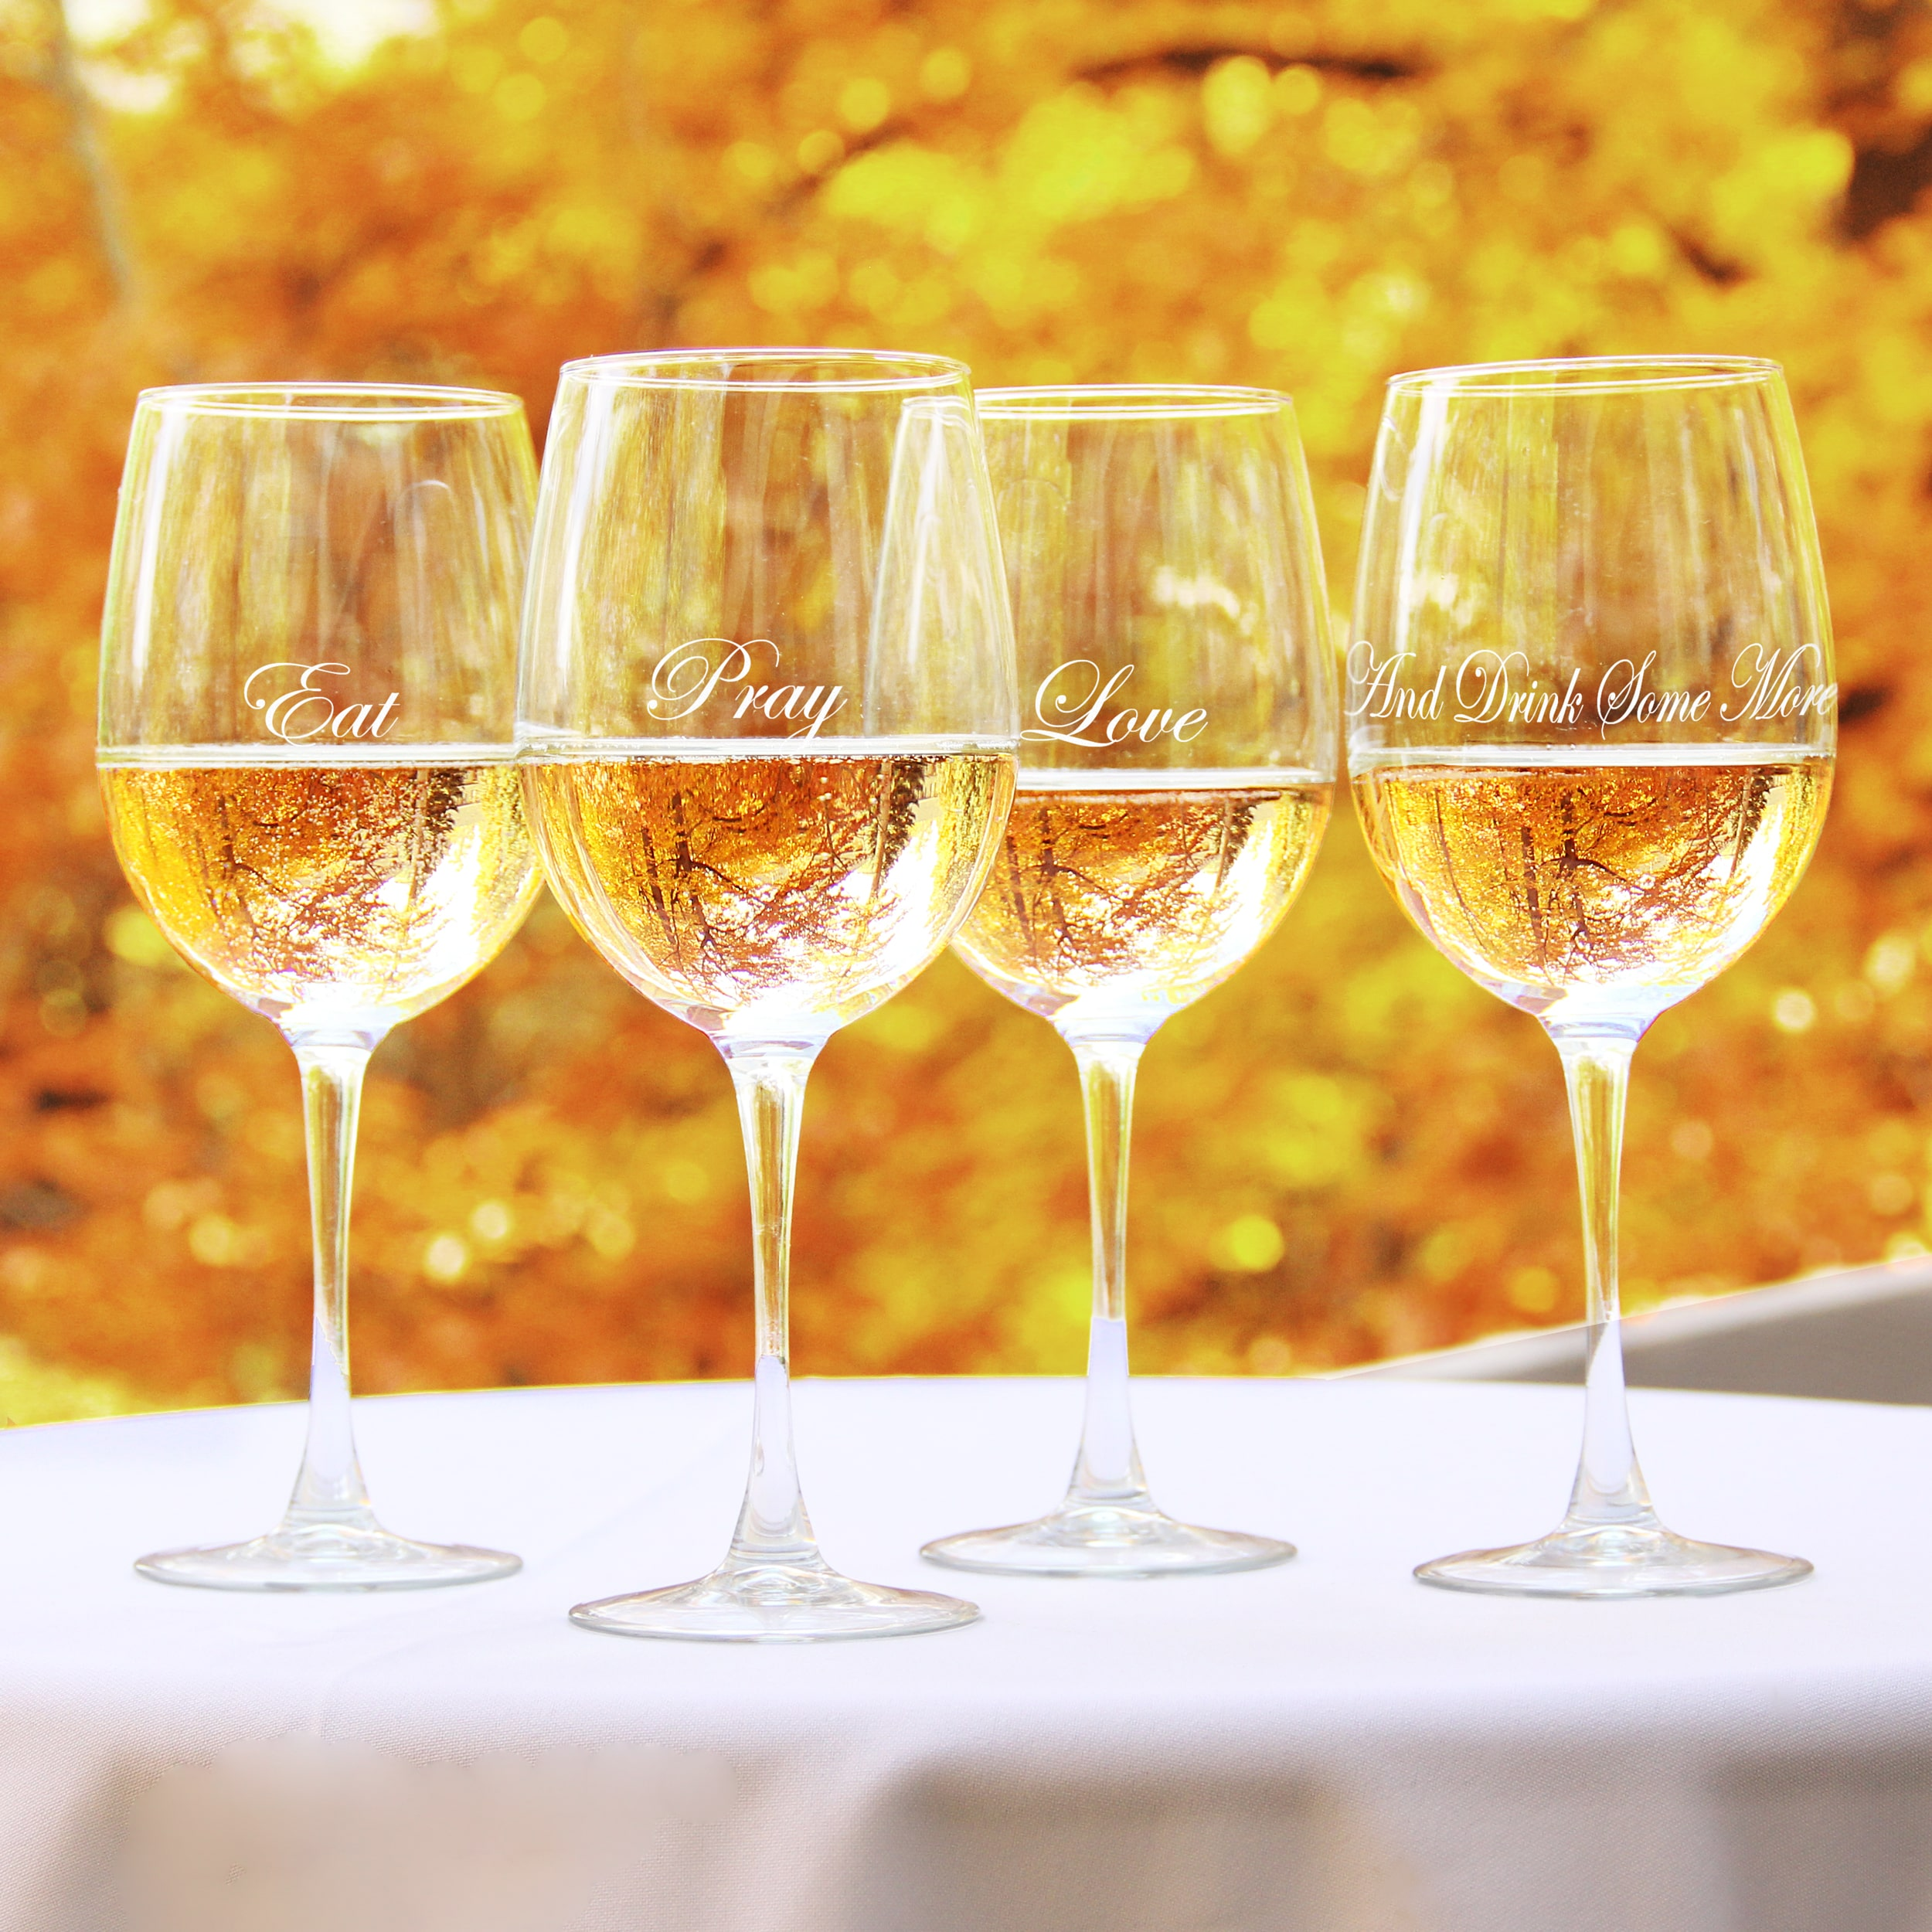 Cathy's Concepts Eat, Pray, Love White Wine Glasses (Set of 4)